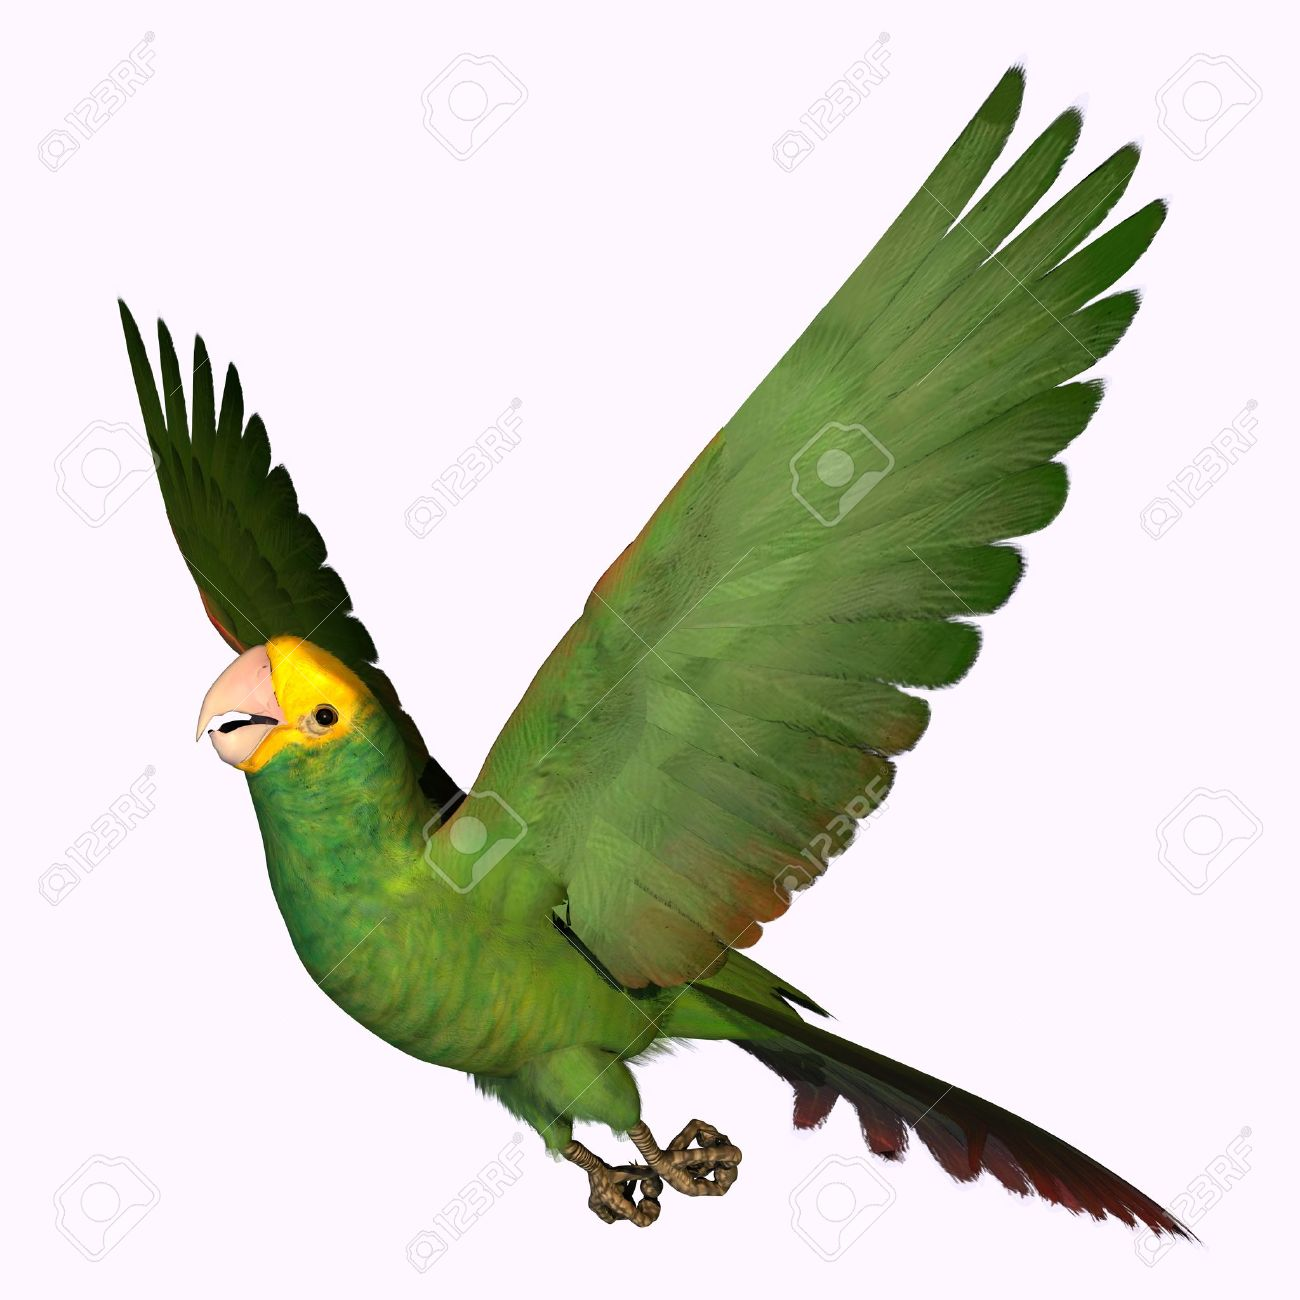 Amazon Parrot clipart #9, Download drawings